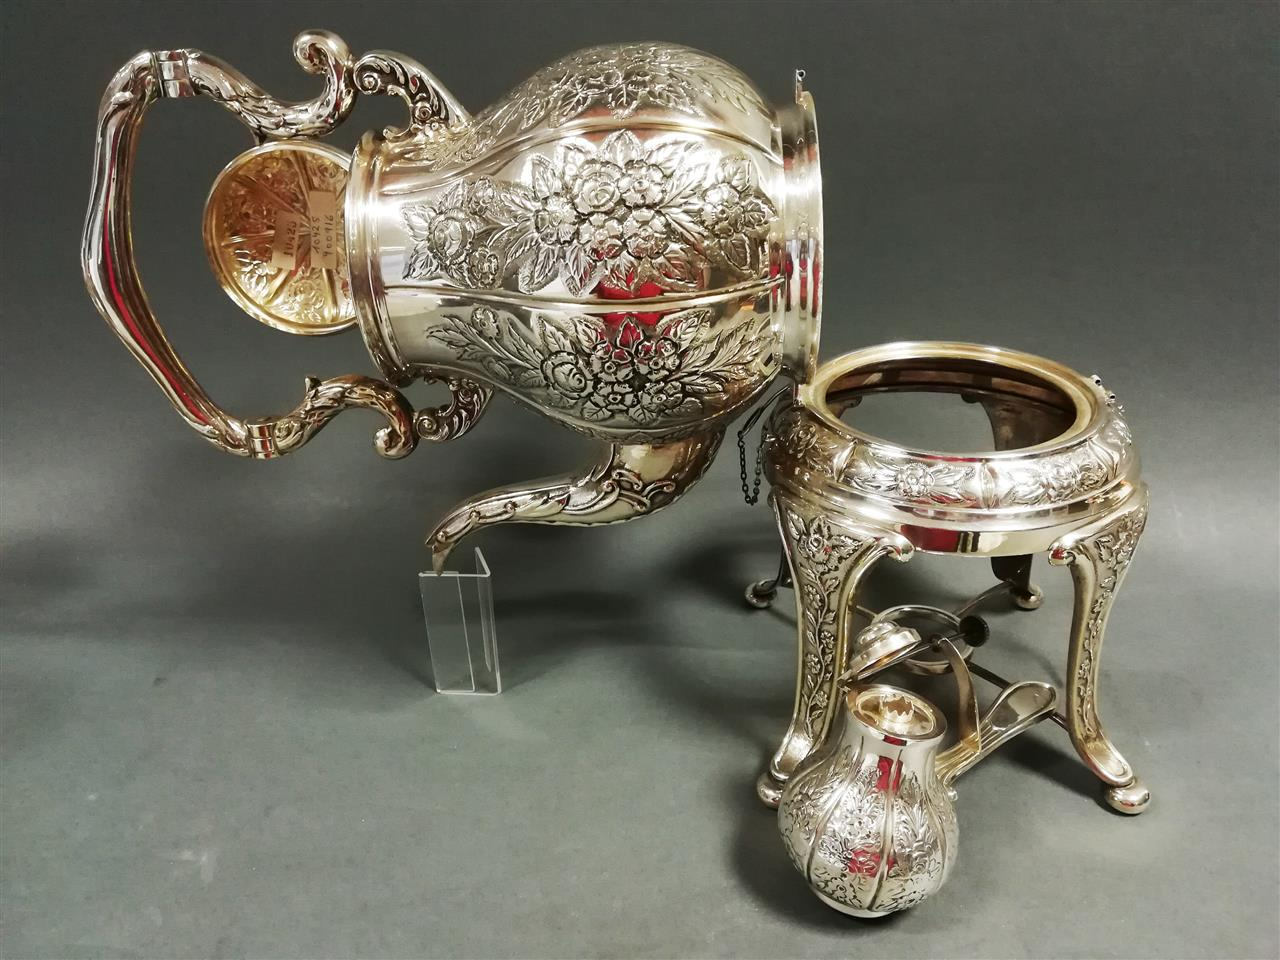 Silver samovar for tea